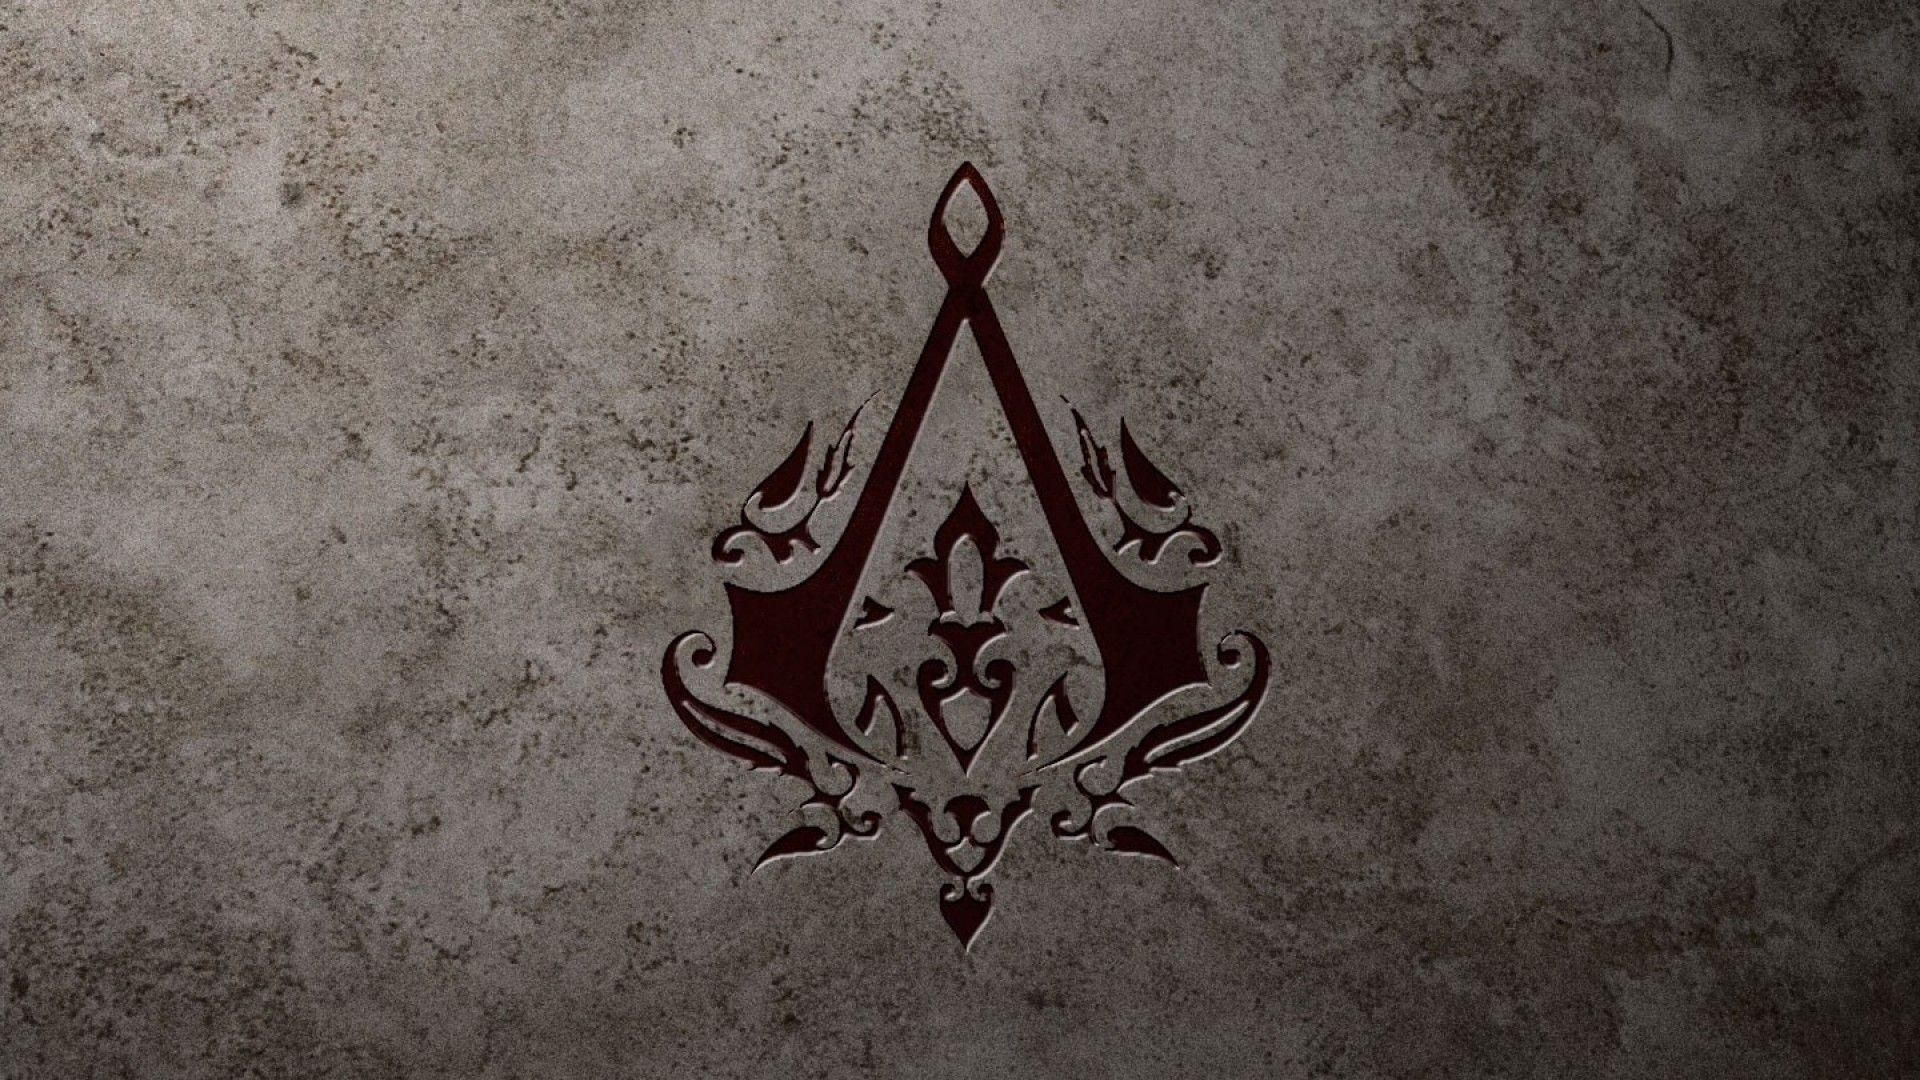 Assassins Creed Symbol Wallpaper